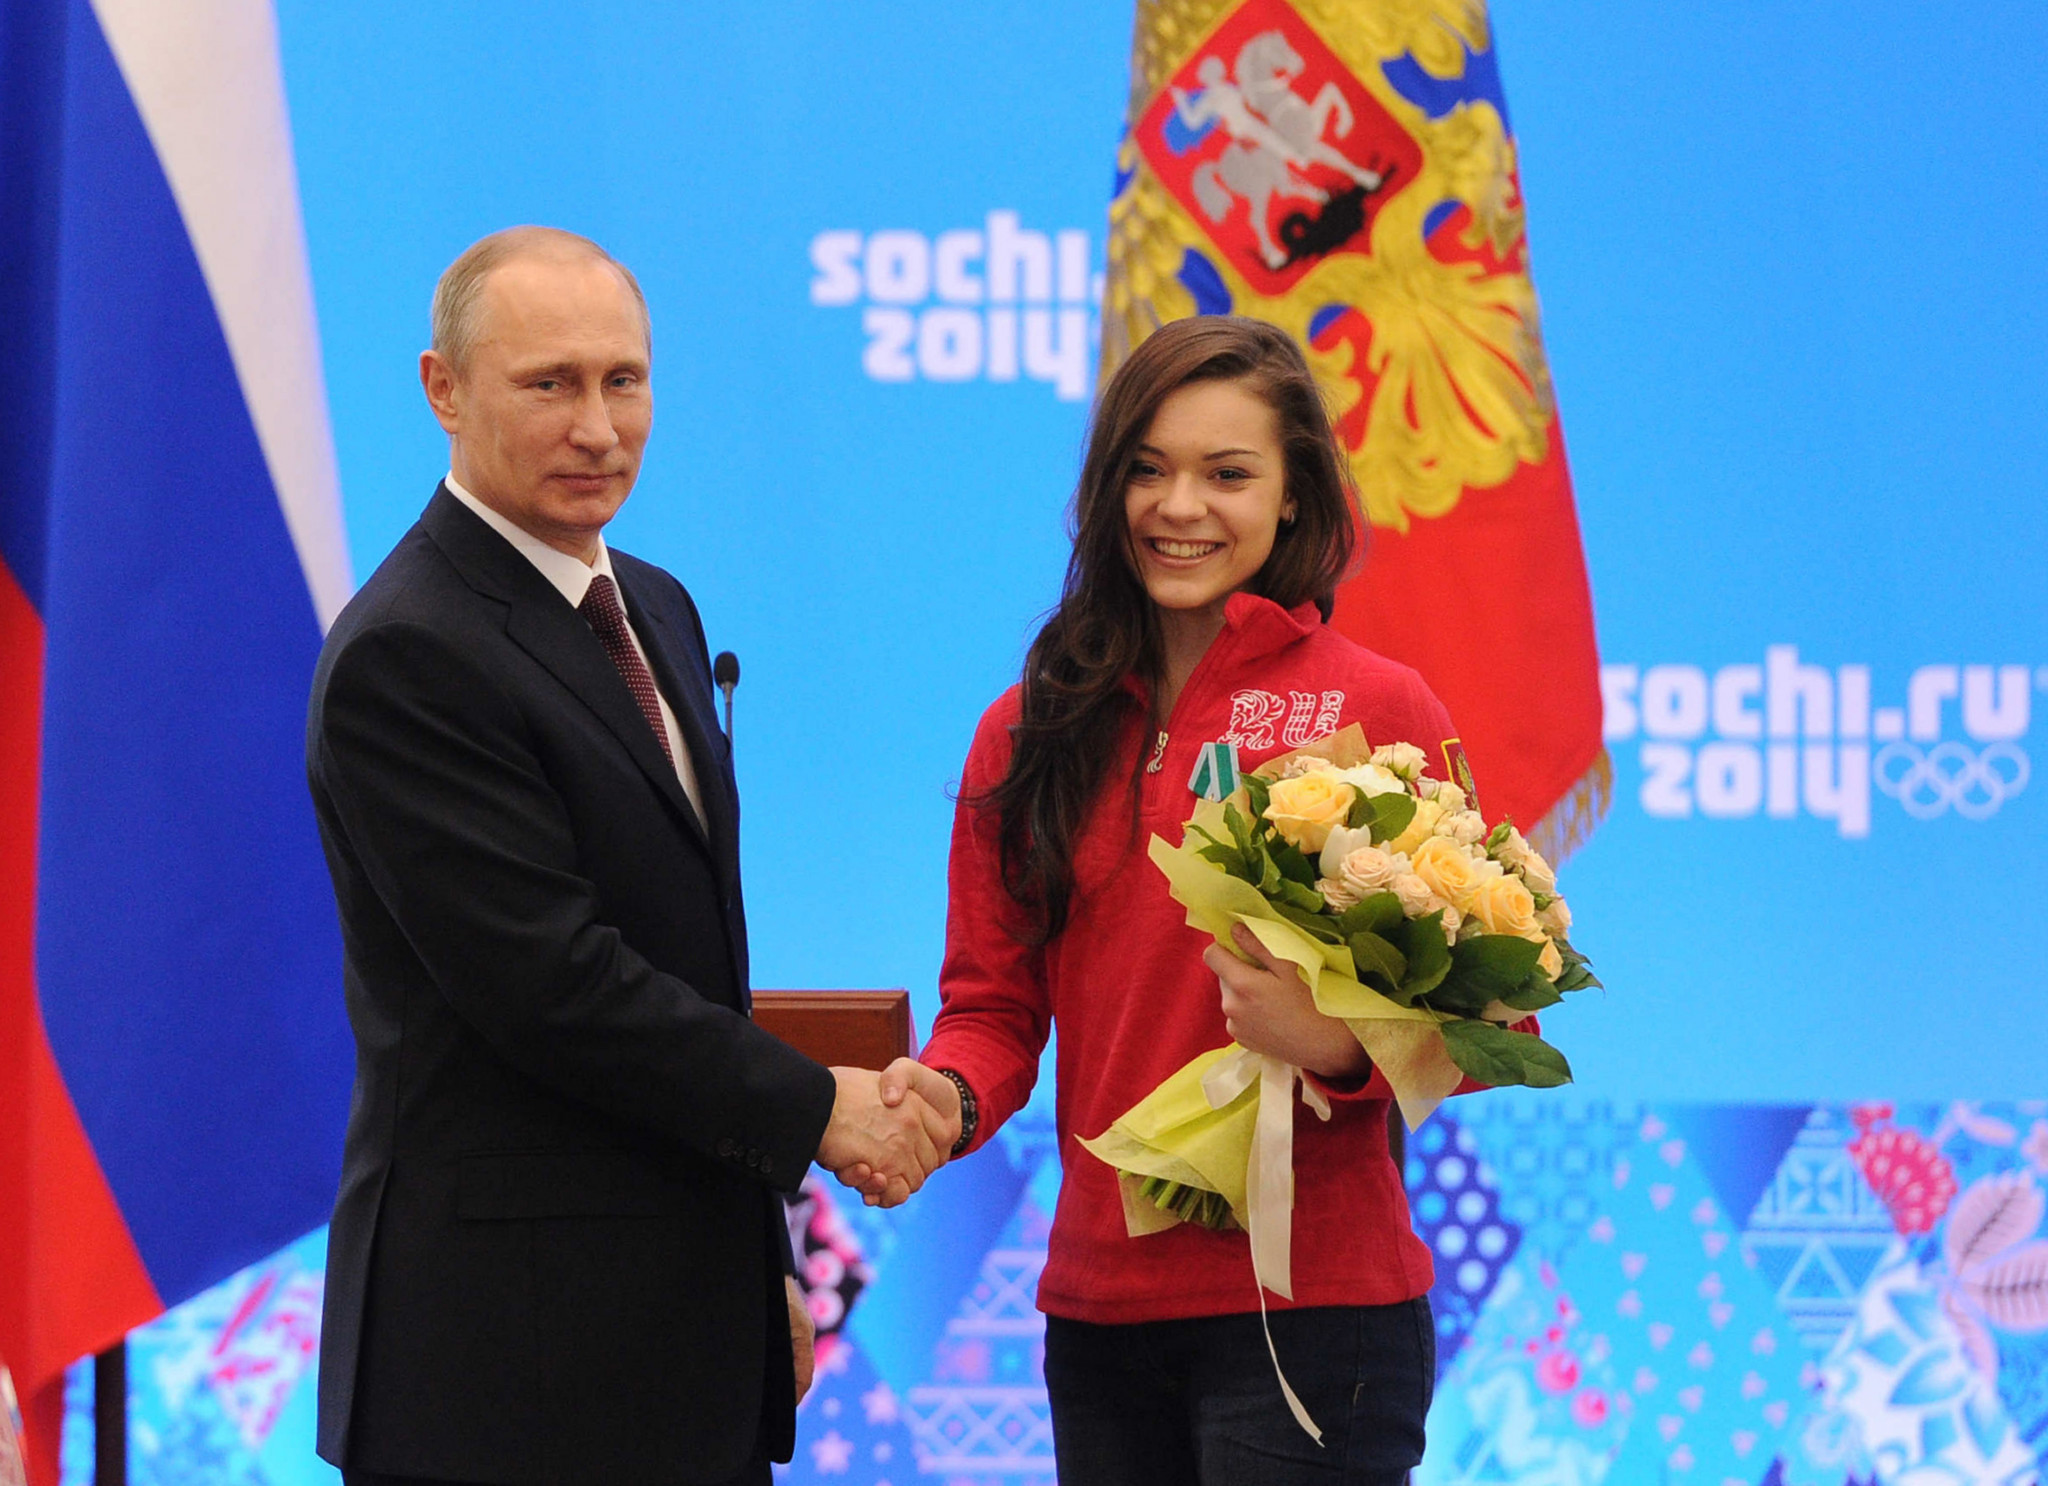 Adelina Sotnikova is congratulated by Russian President Vladimir Putin after her Sochi 2014 success ©Getty Images